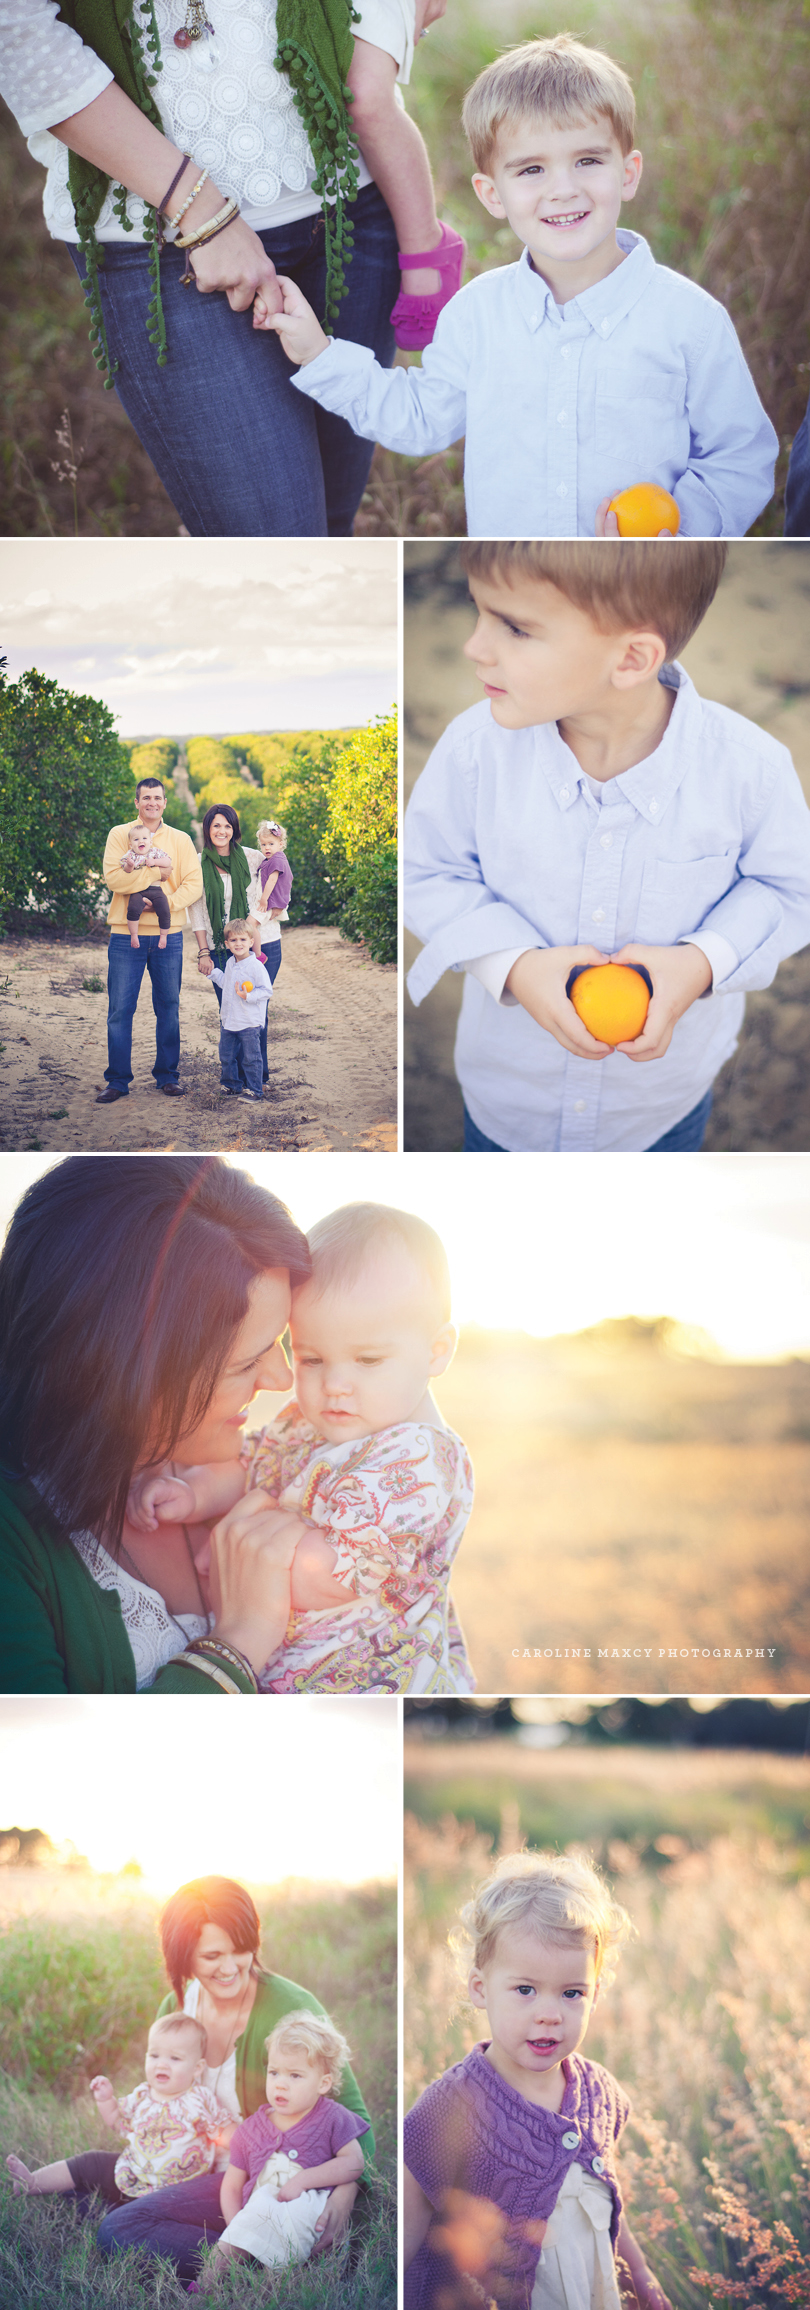 2012_CarolineMaxcyPhotography_Fall_Recap22